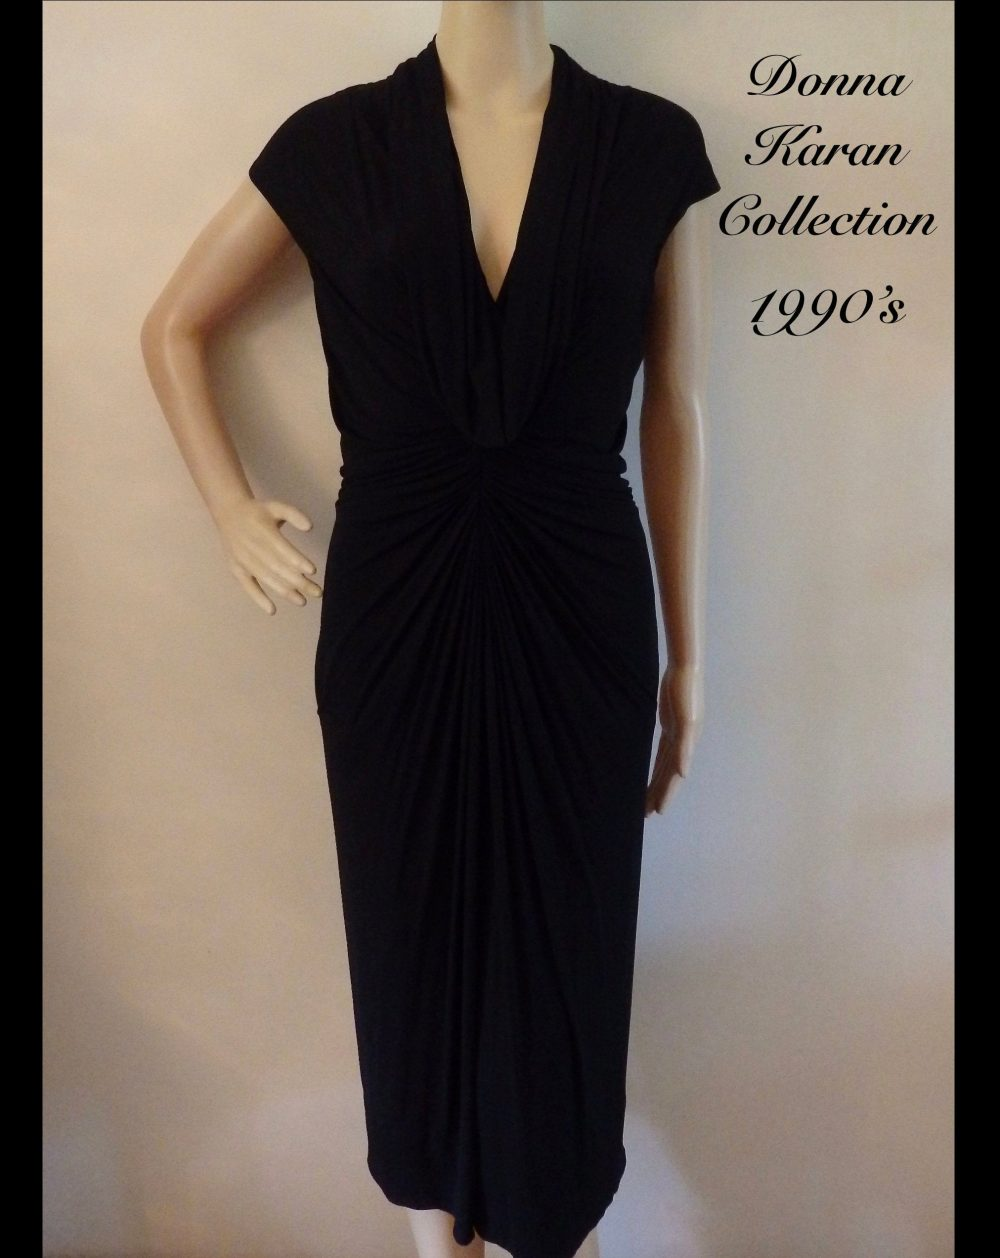 1990S Donna Karan Collection Silk Blend Jersey Infinity Dress~2 Different Neckline Options